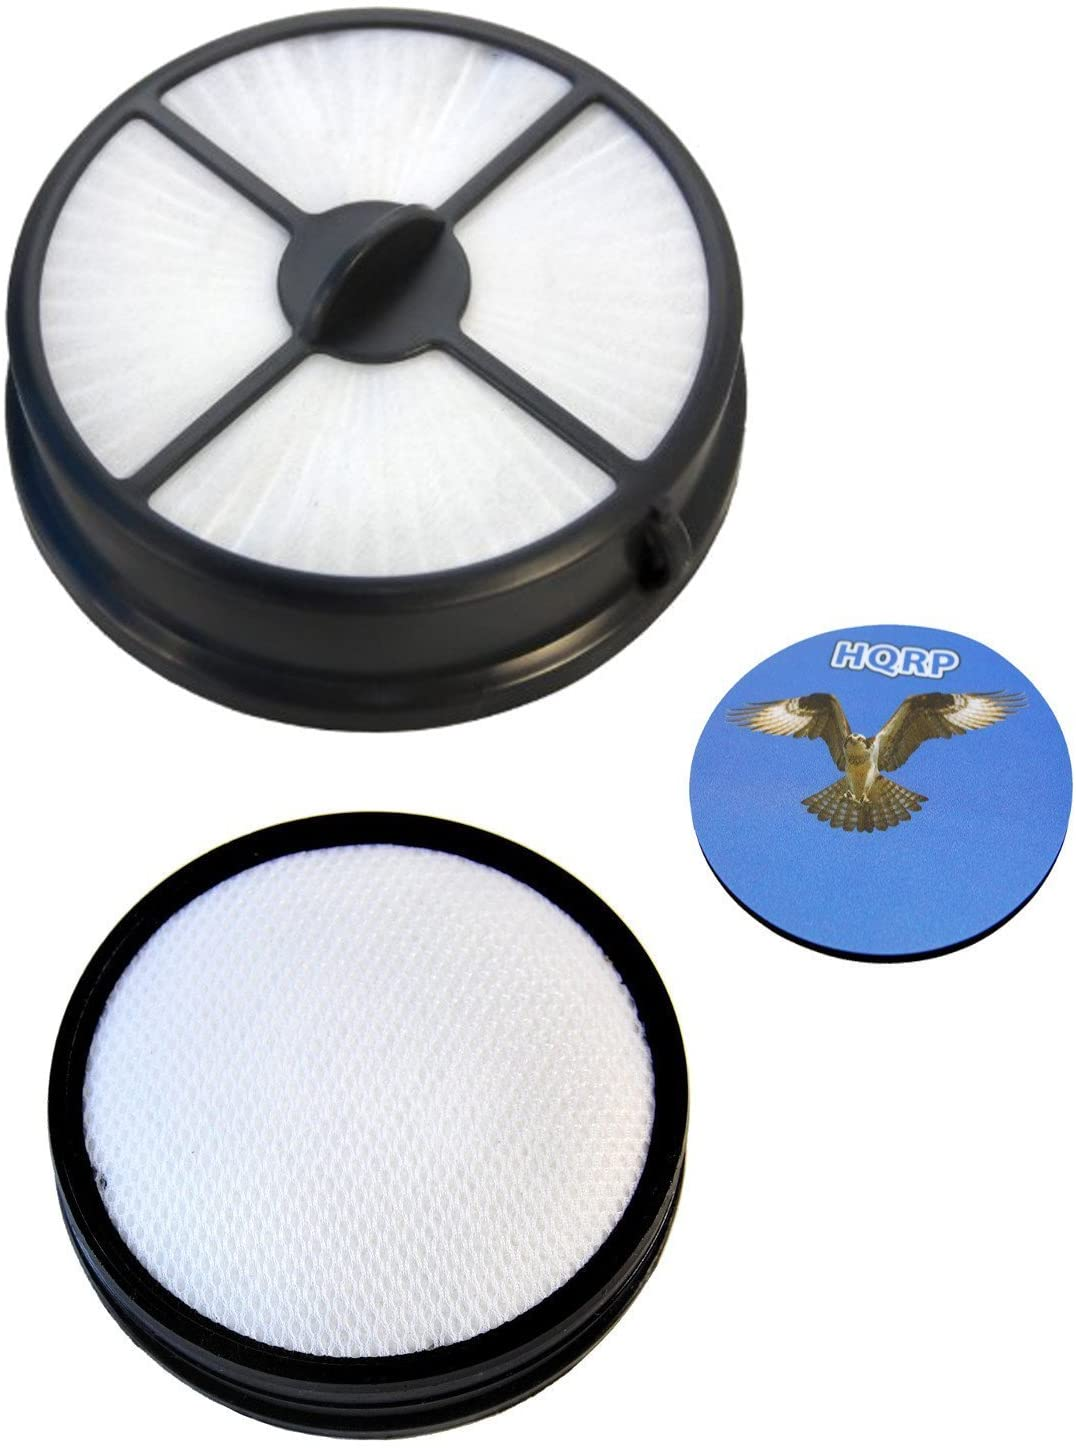 HQRP Kit: Primary Filter Assembly and Exhaust Media Filter for Hoover UH70403PC WindTunnel Air Whole Home Plus Coaster